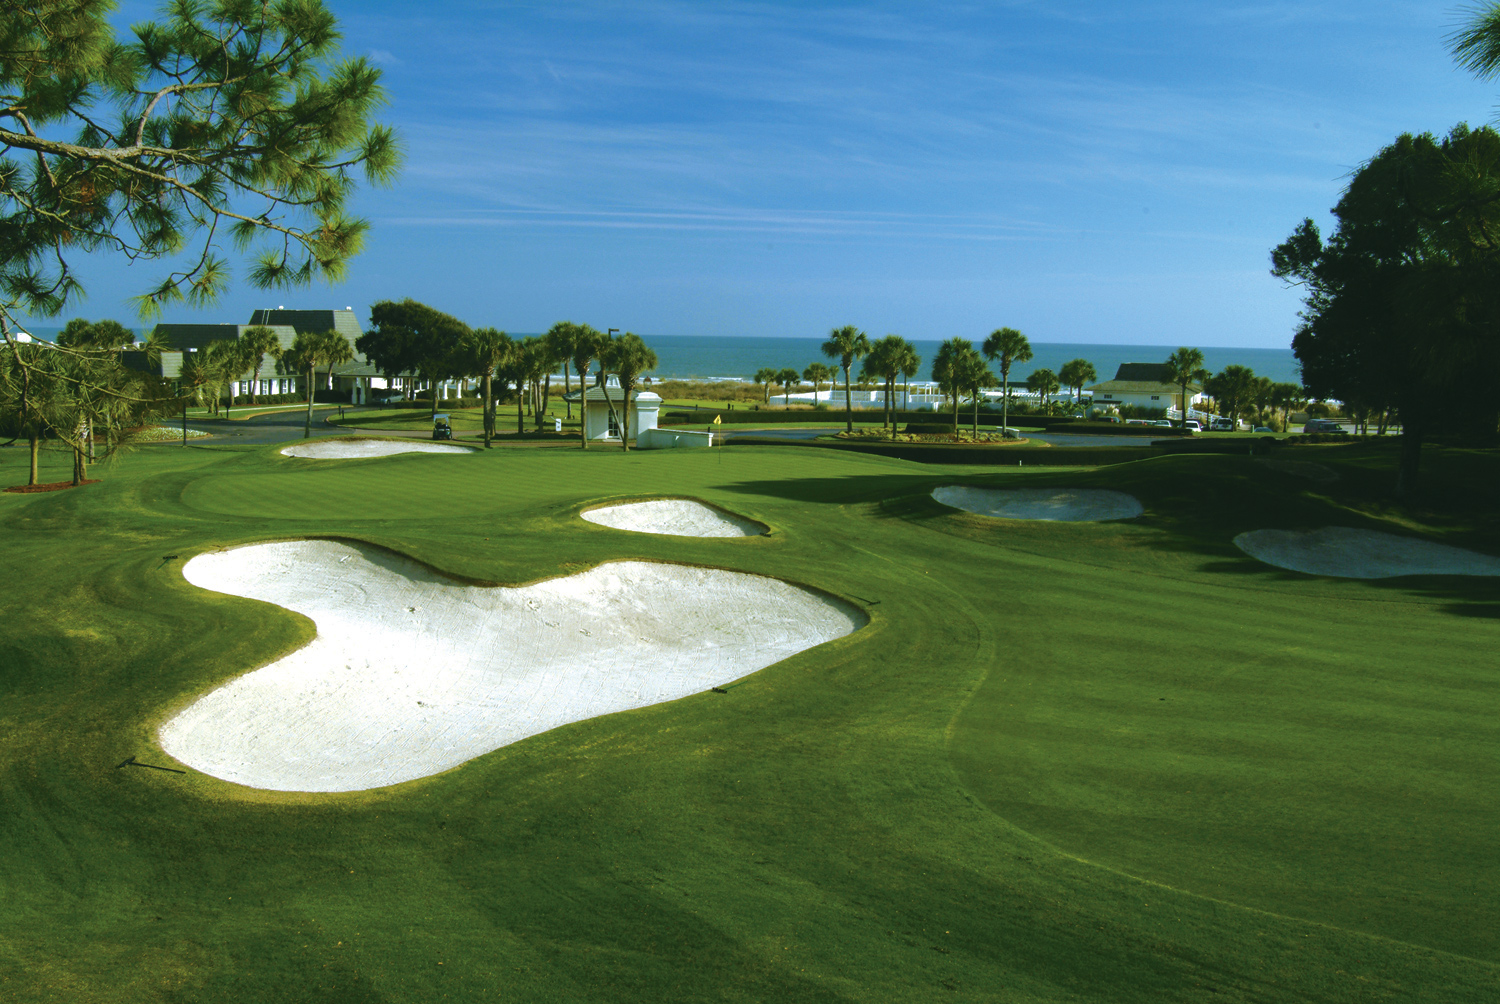 The Dunes Golf Amp Beach Club Named One Of America S Top 100 Public Courses